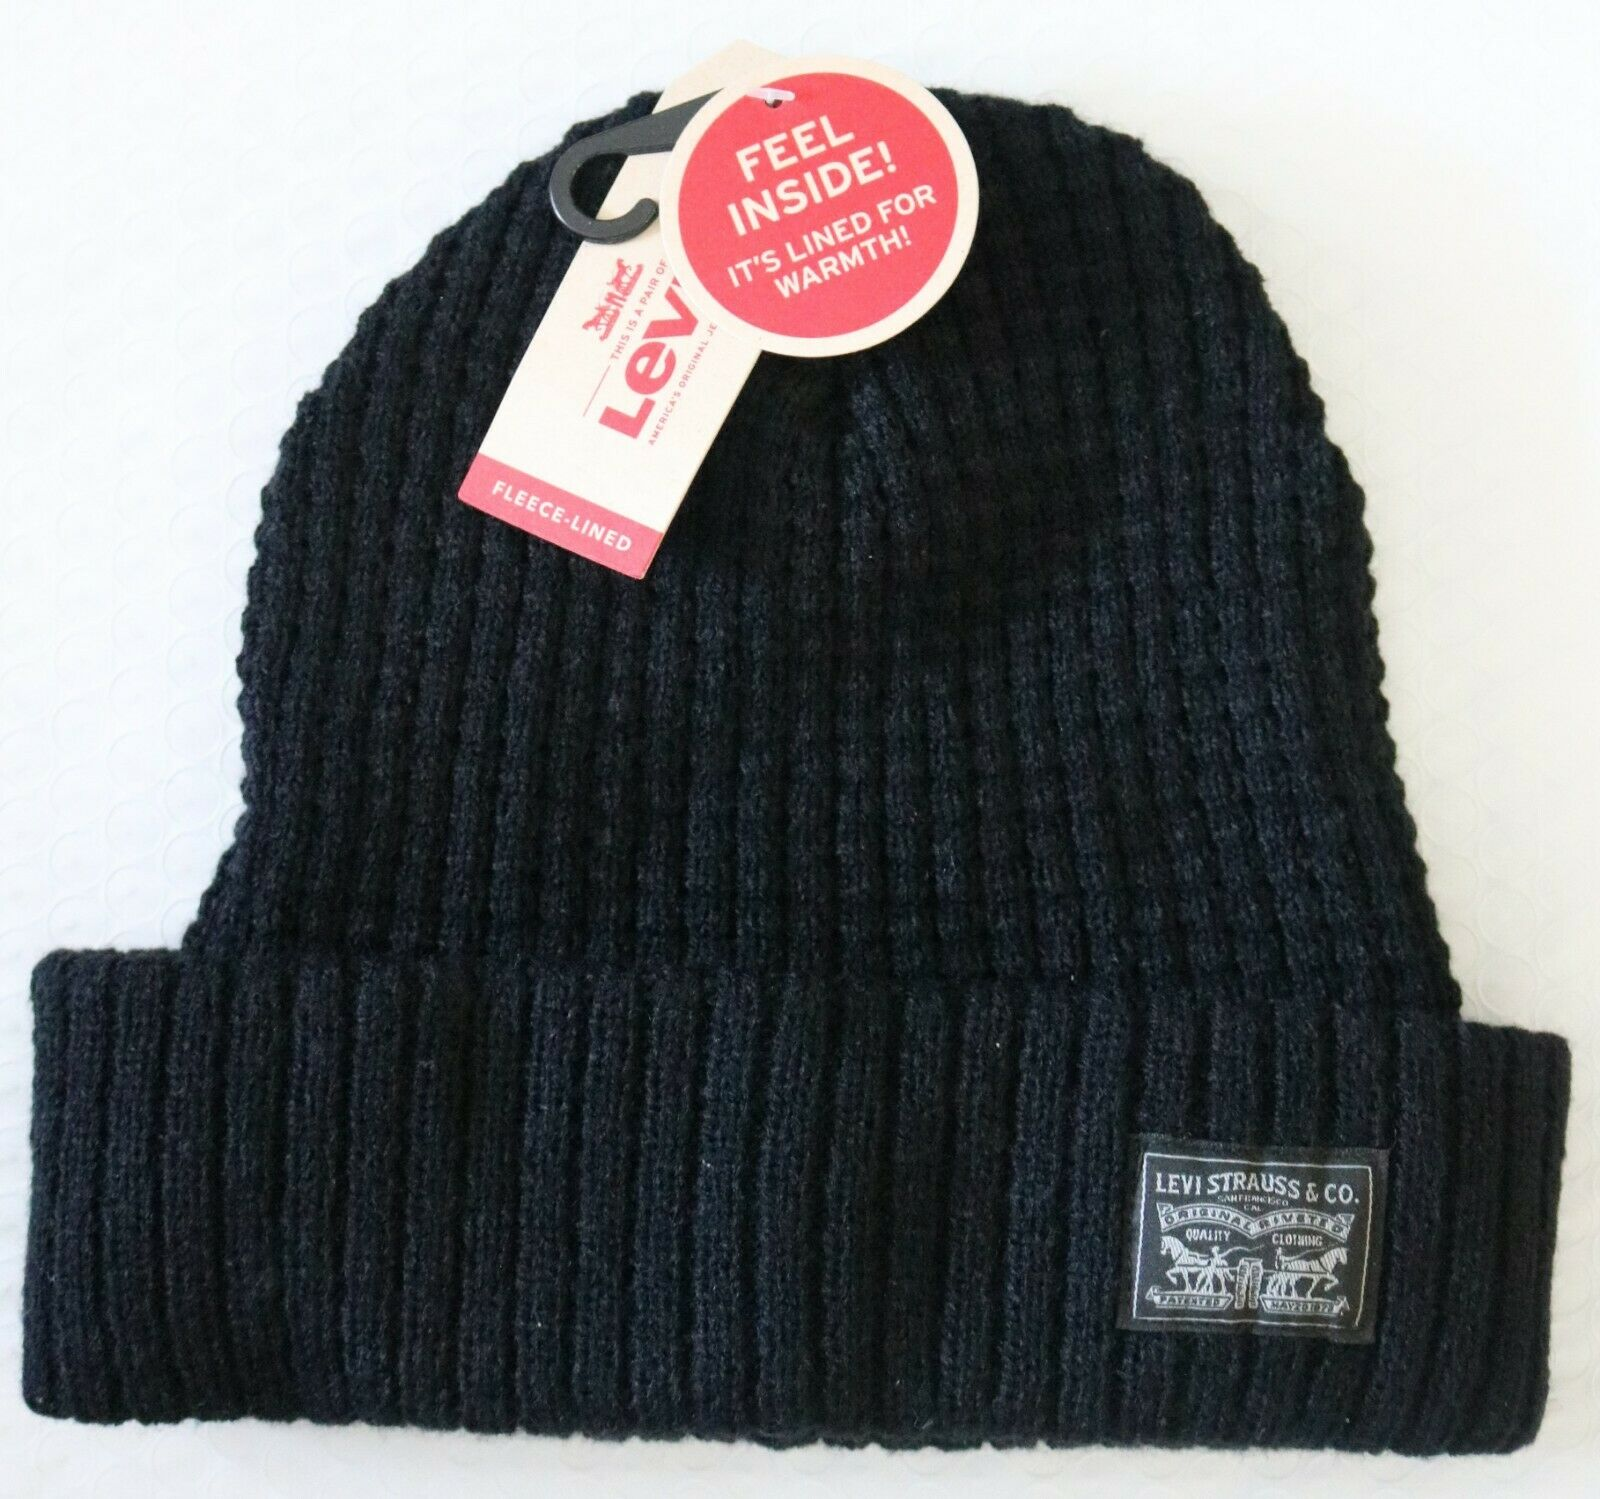 f9b9b8ed3bde8 Levi s Max Warmth Mens Fleece Lined Knit Cuff Beanie Hat Black One Size